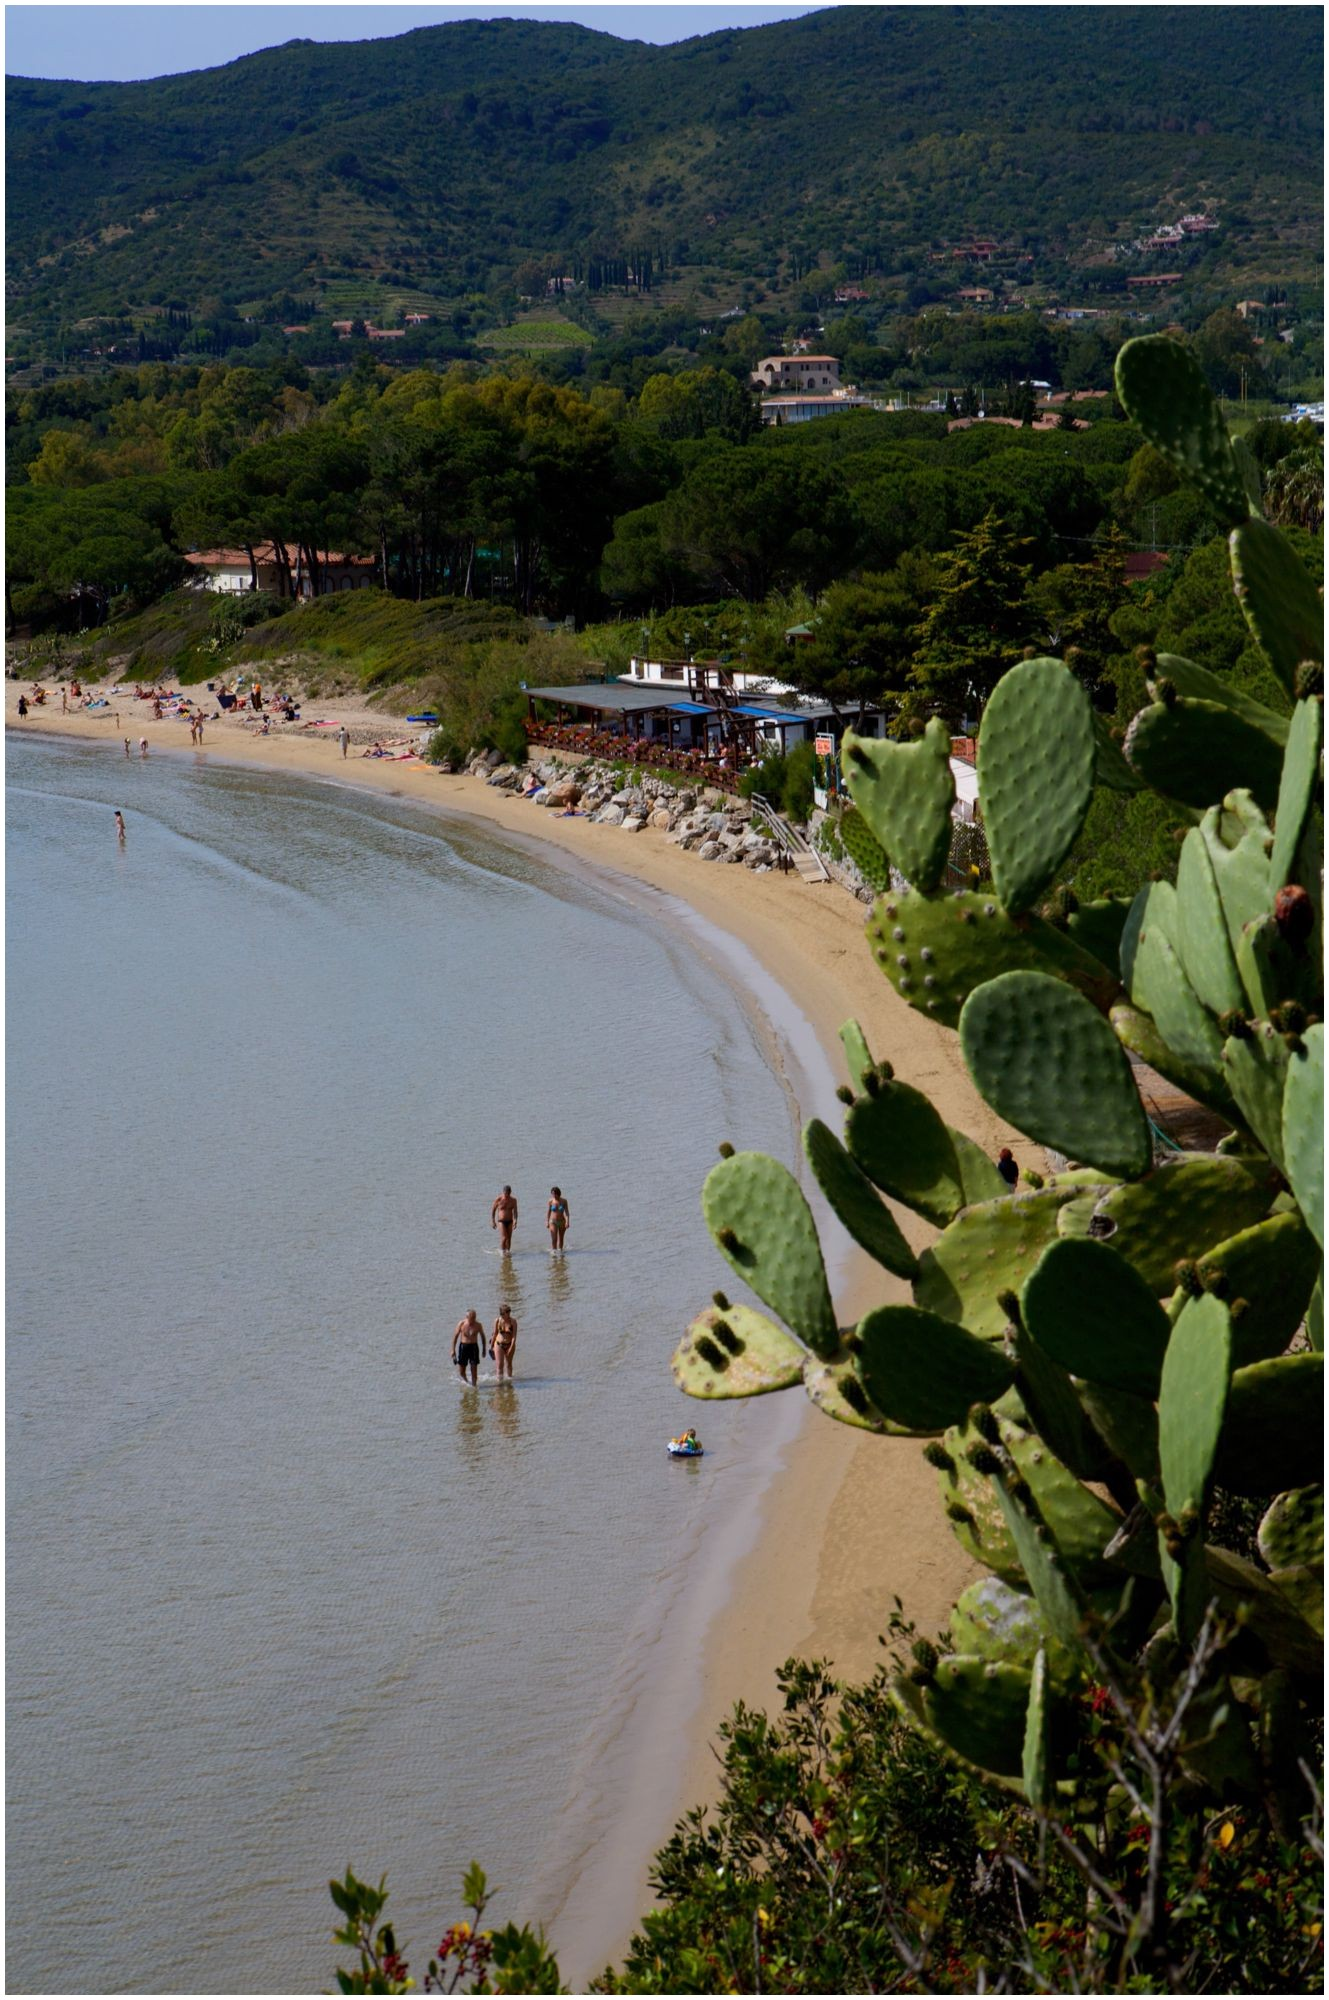 Beach Camping Italy Beautiful Campsites In Italy – the Best Camping In Italy